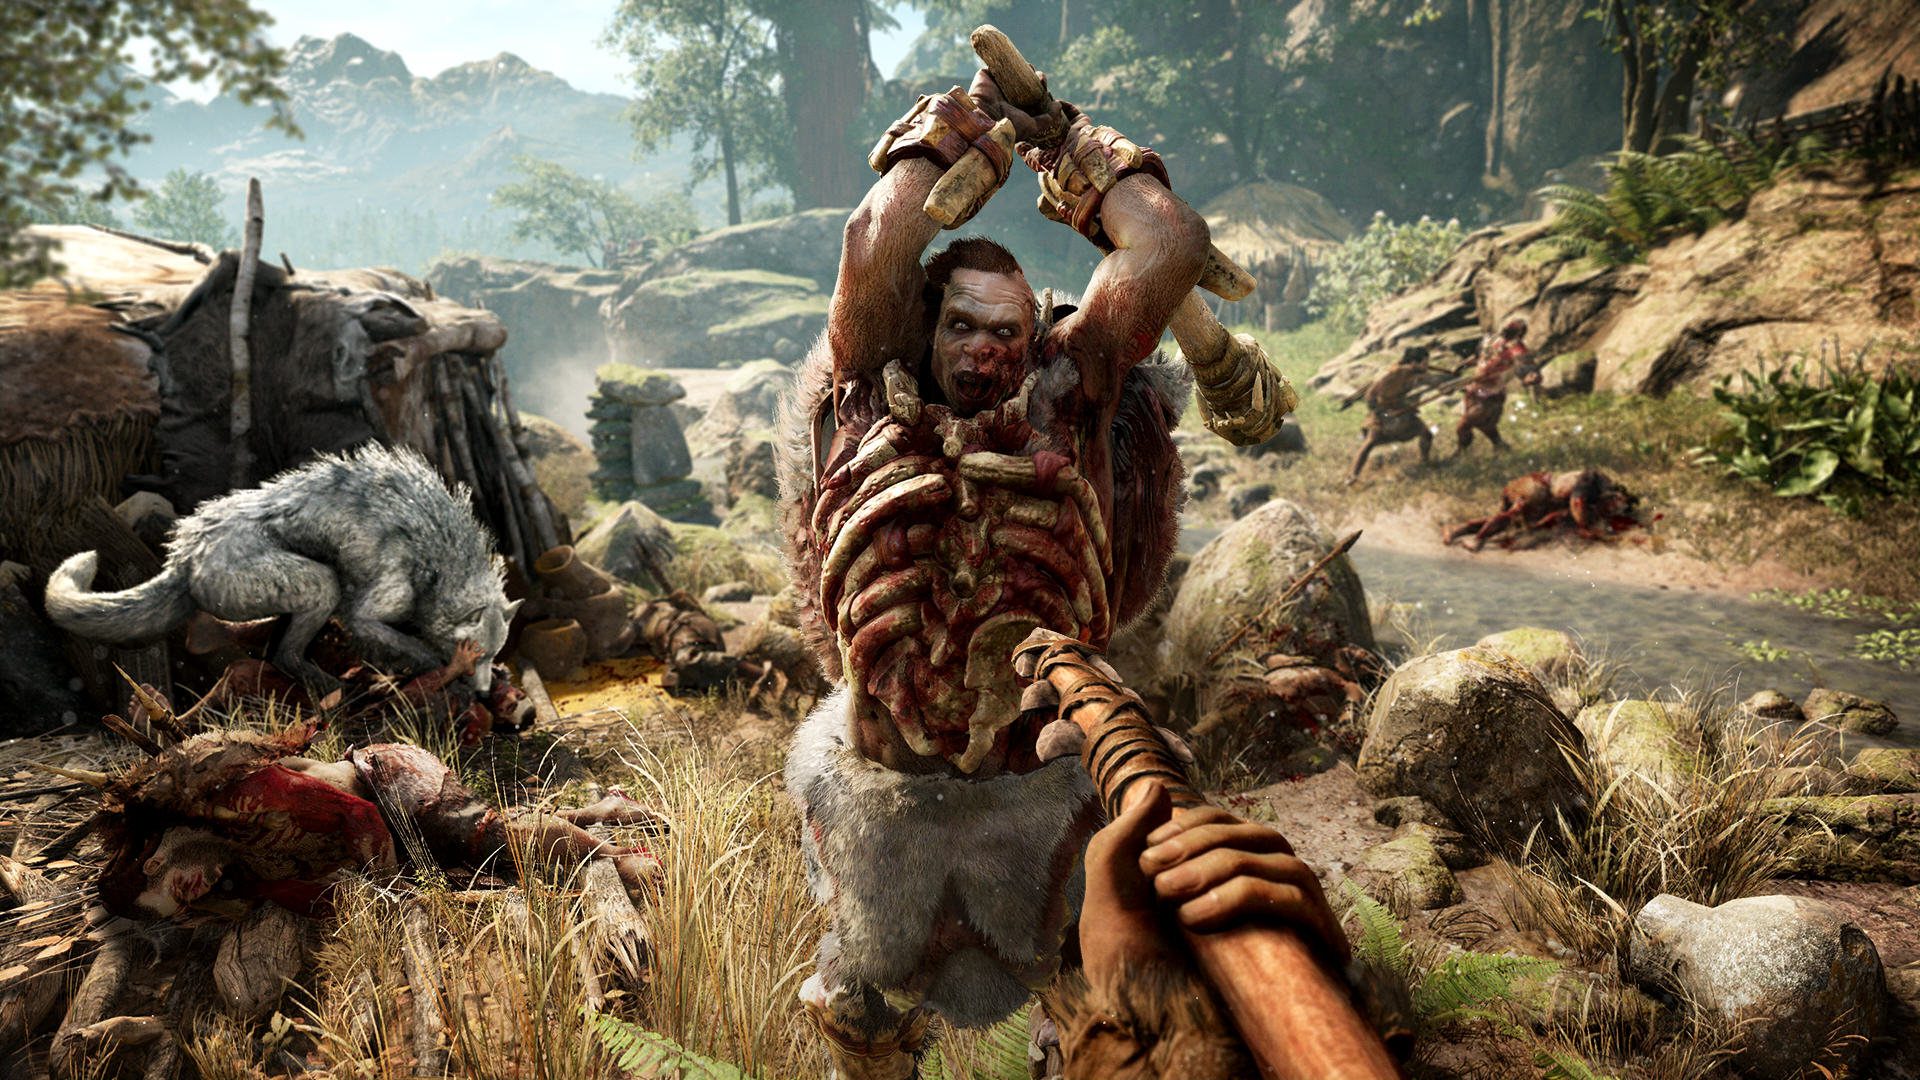 FCP 09 Udam Attack Screenshots PREVIEW PR 160126 6pm CET 1453716692 Far Cry Primal Is Shameless Pre Historic Fun, If A Little Shallow